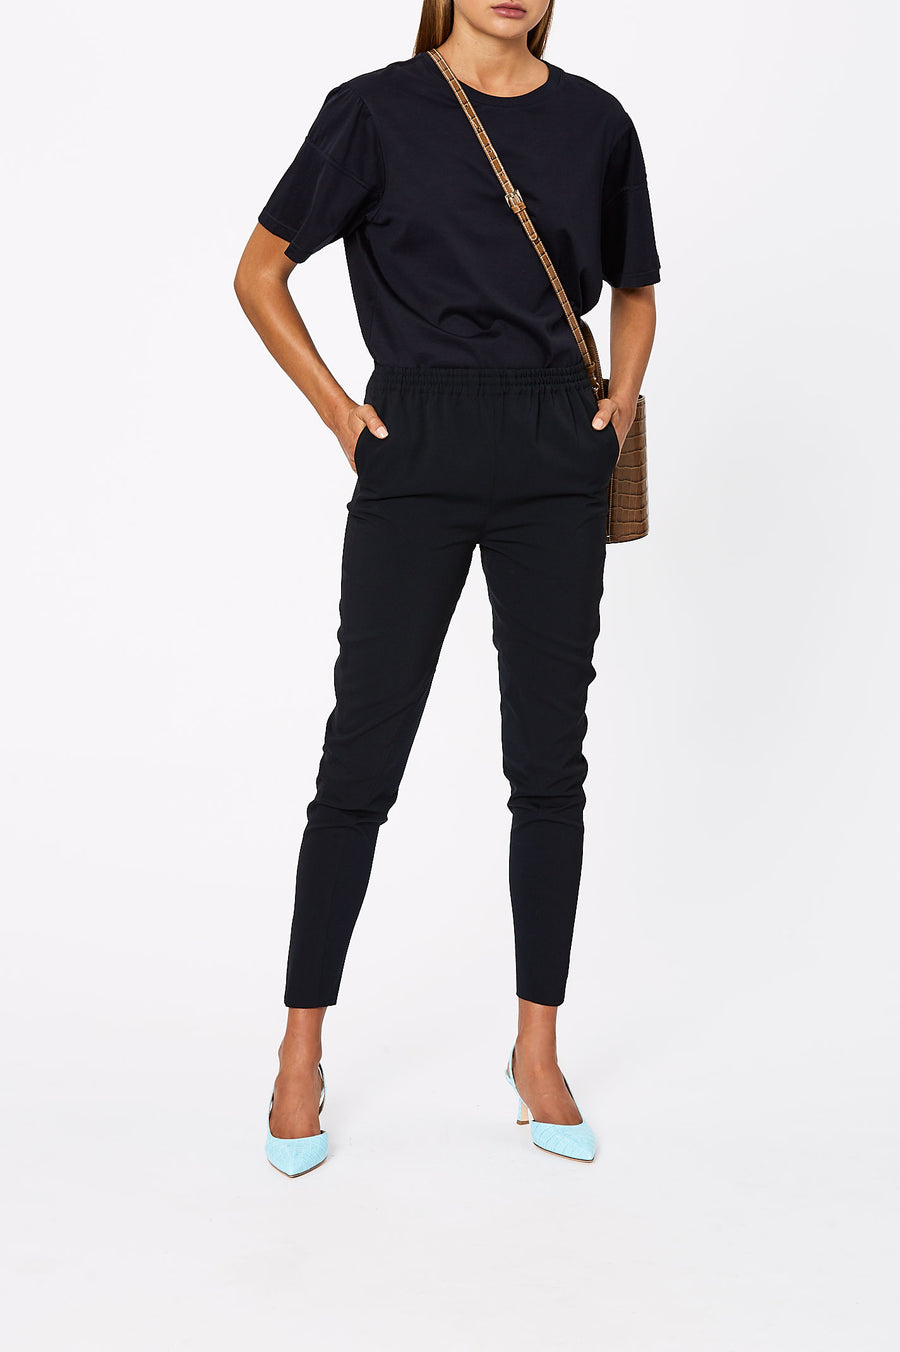 The Crepe Trim Trouser is a slim fit trouser' in a cropped style, featuring a pull on style